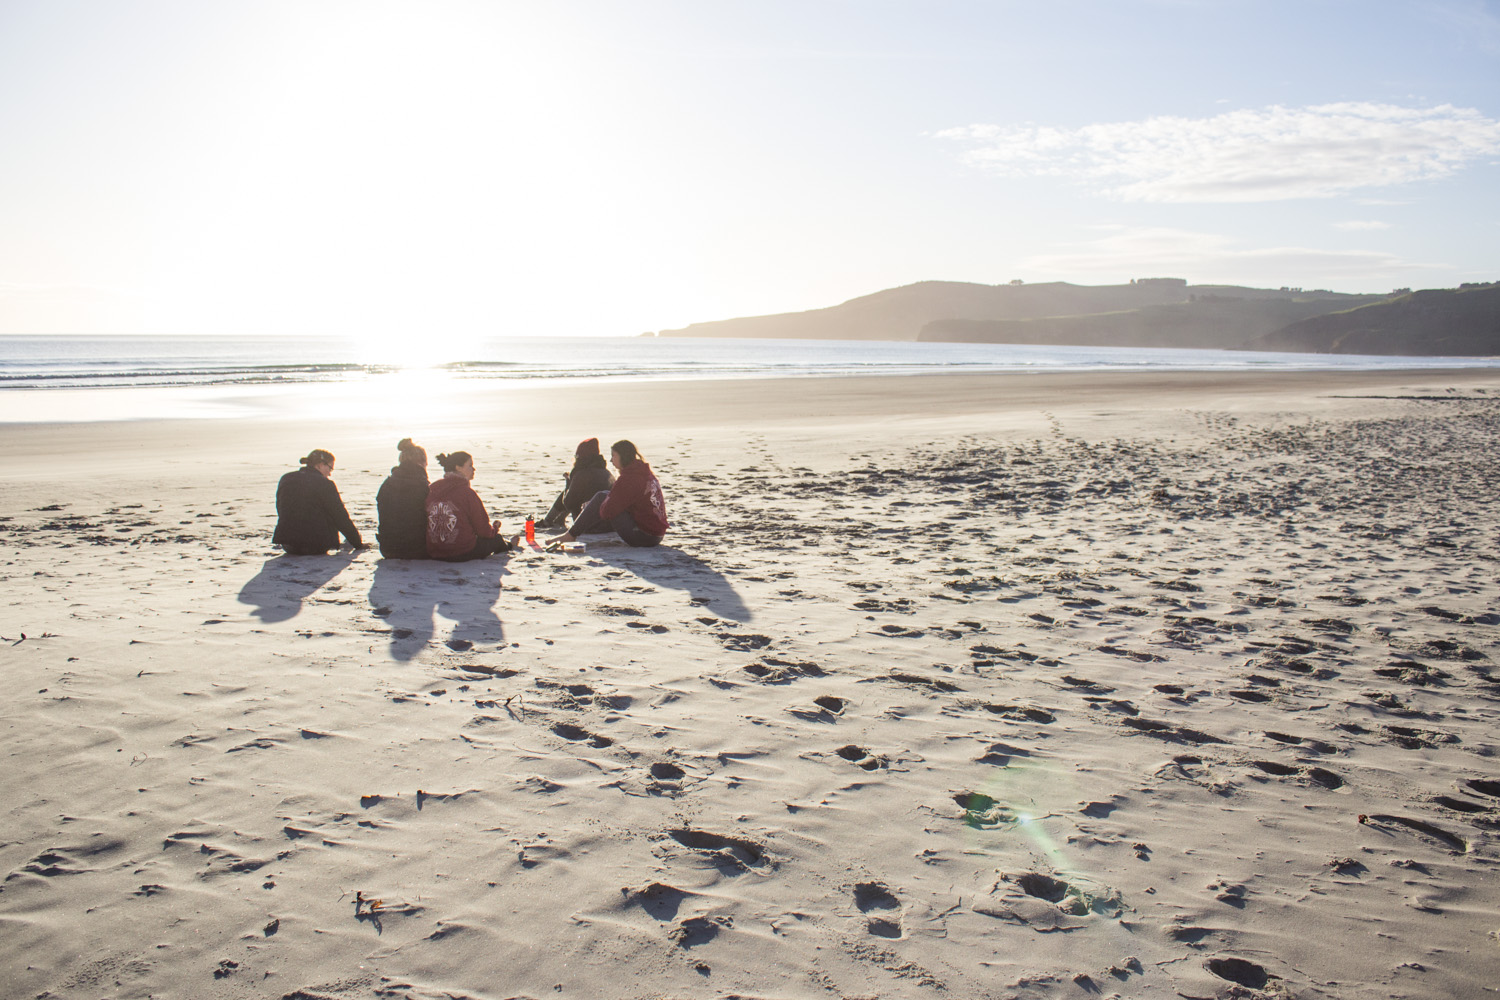 Breakfast on the beach after sleeping in a cave, as you do • Dunedin, New Zealand •